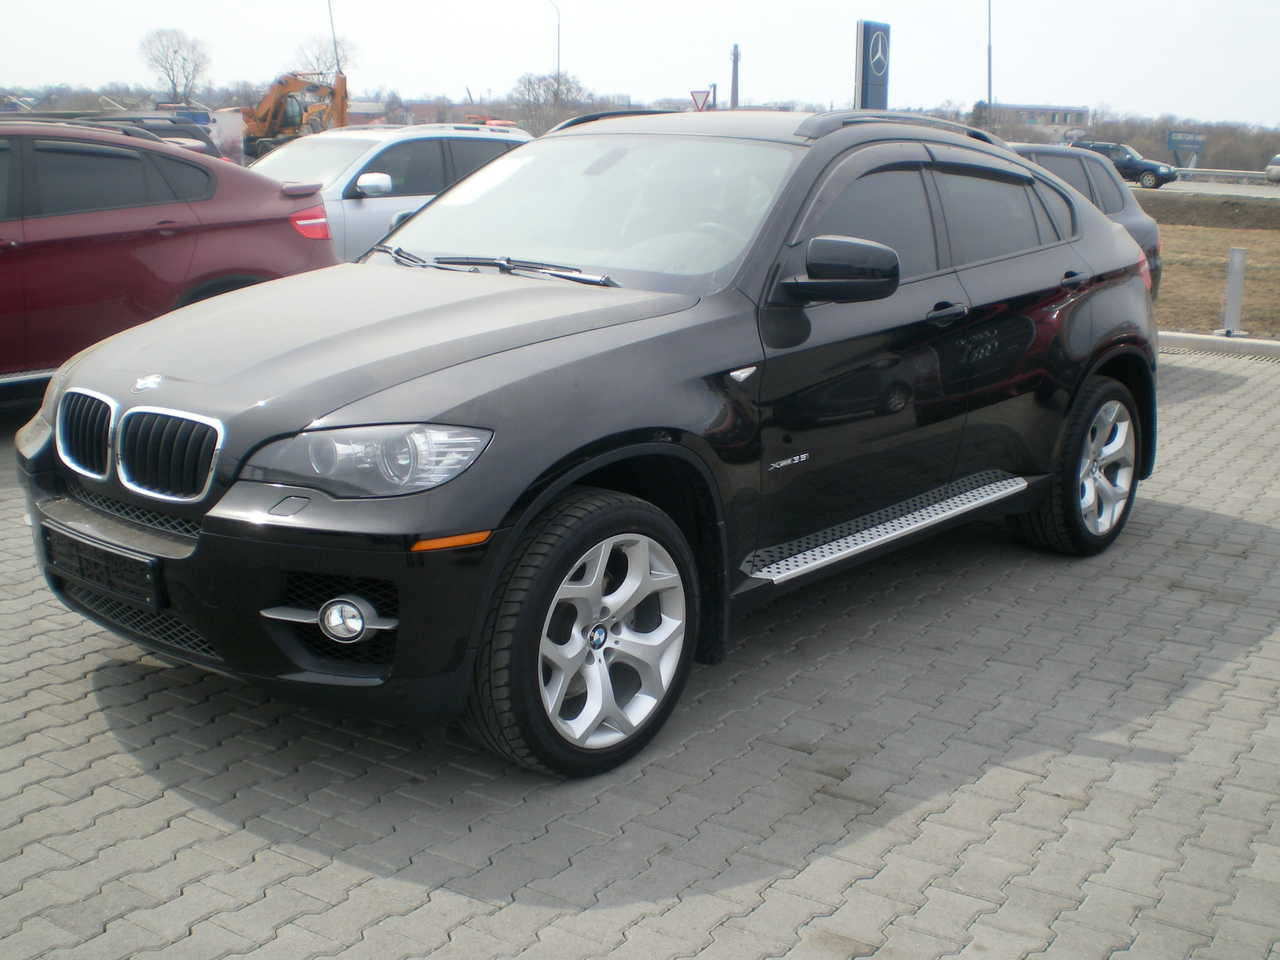 2009 Bmw X6 Photos 3 0 Gasoline Automatic For Sale